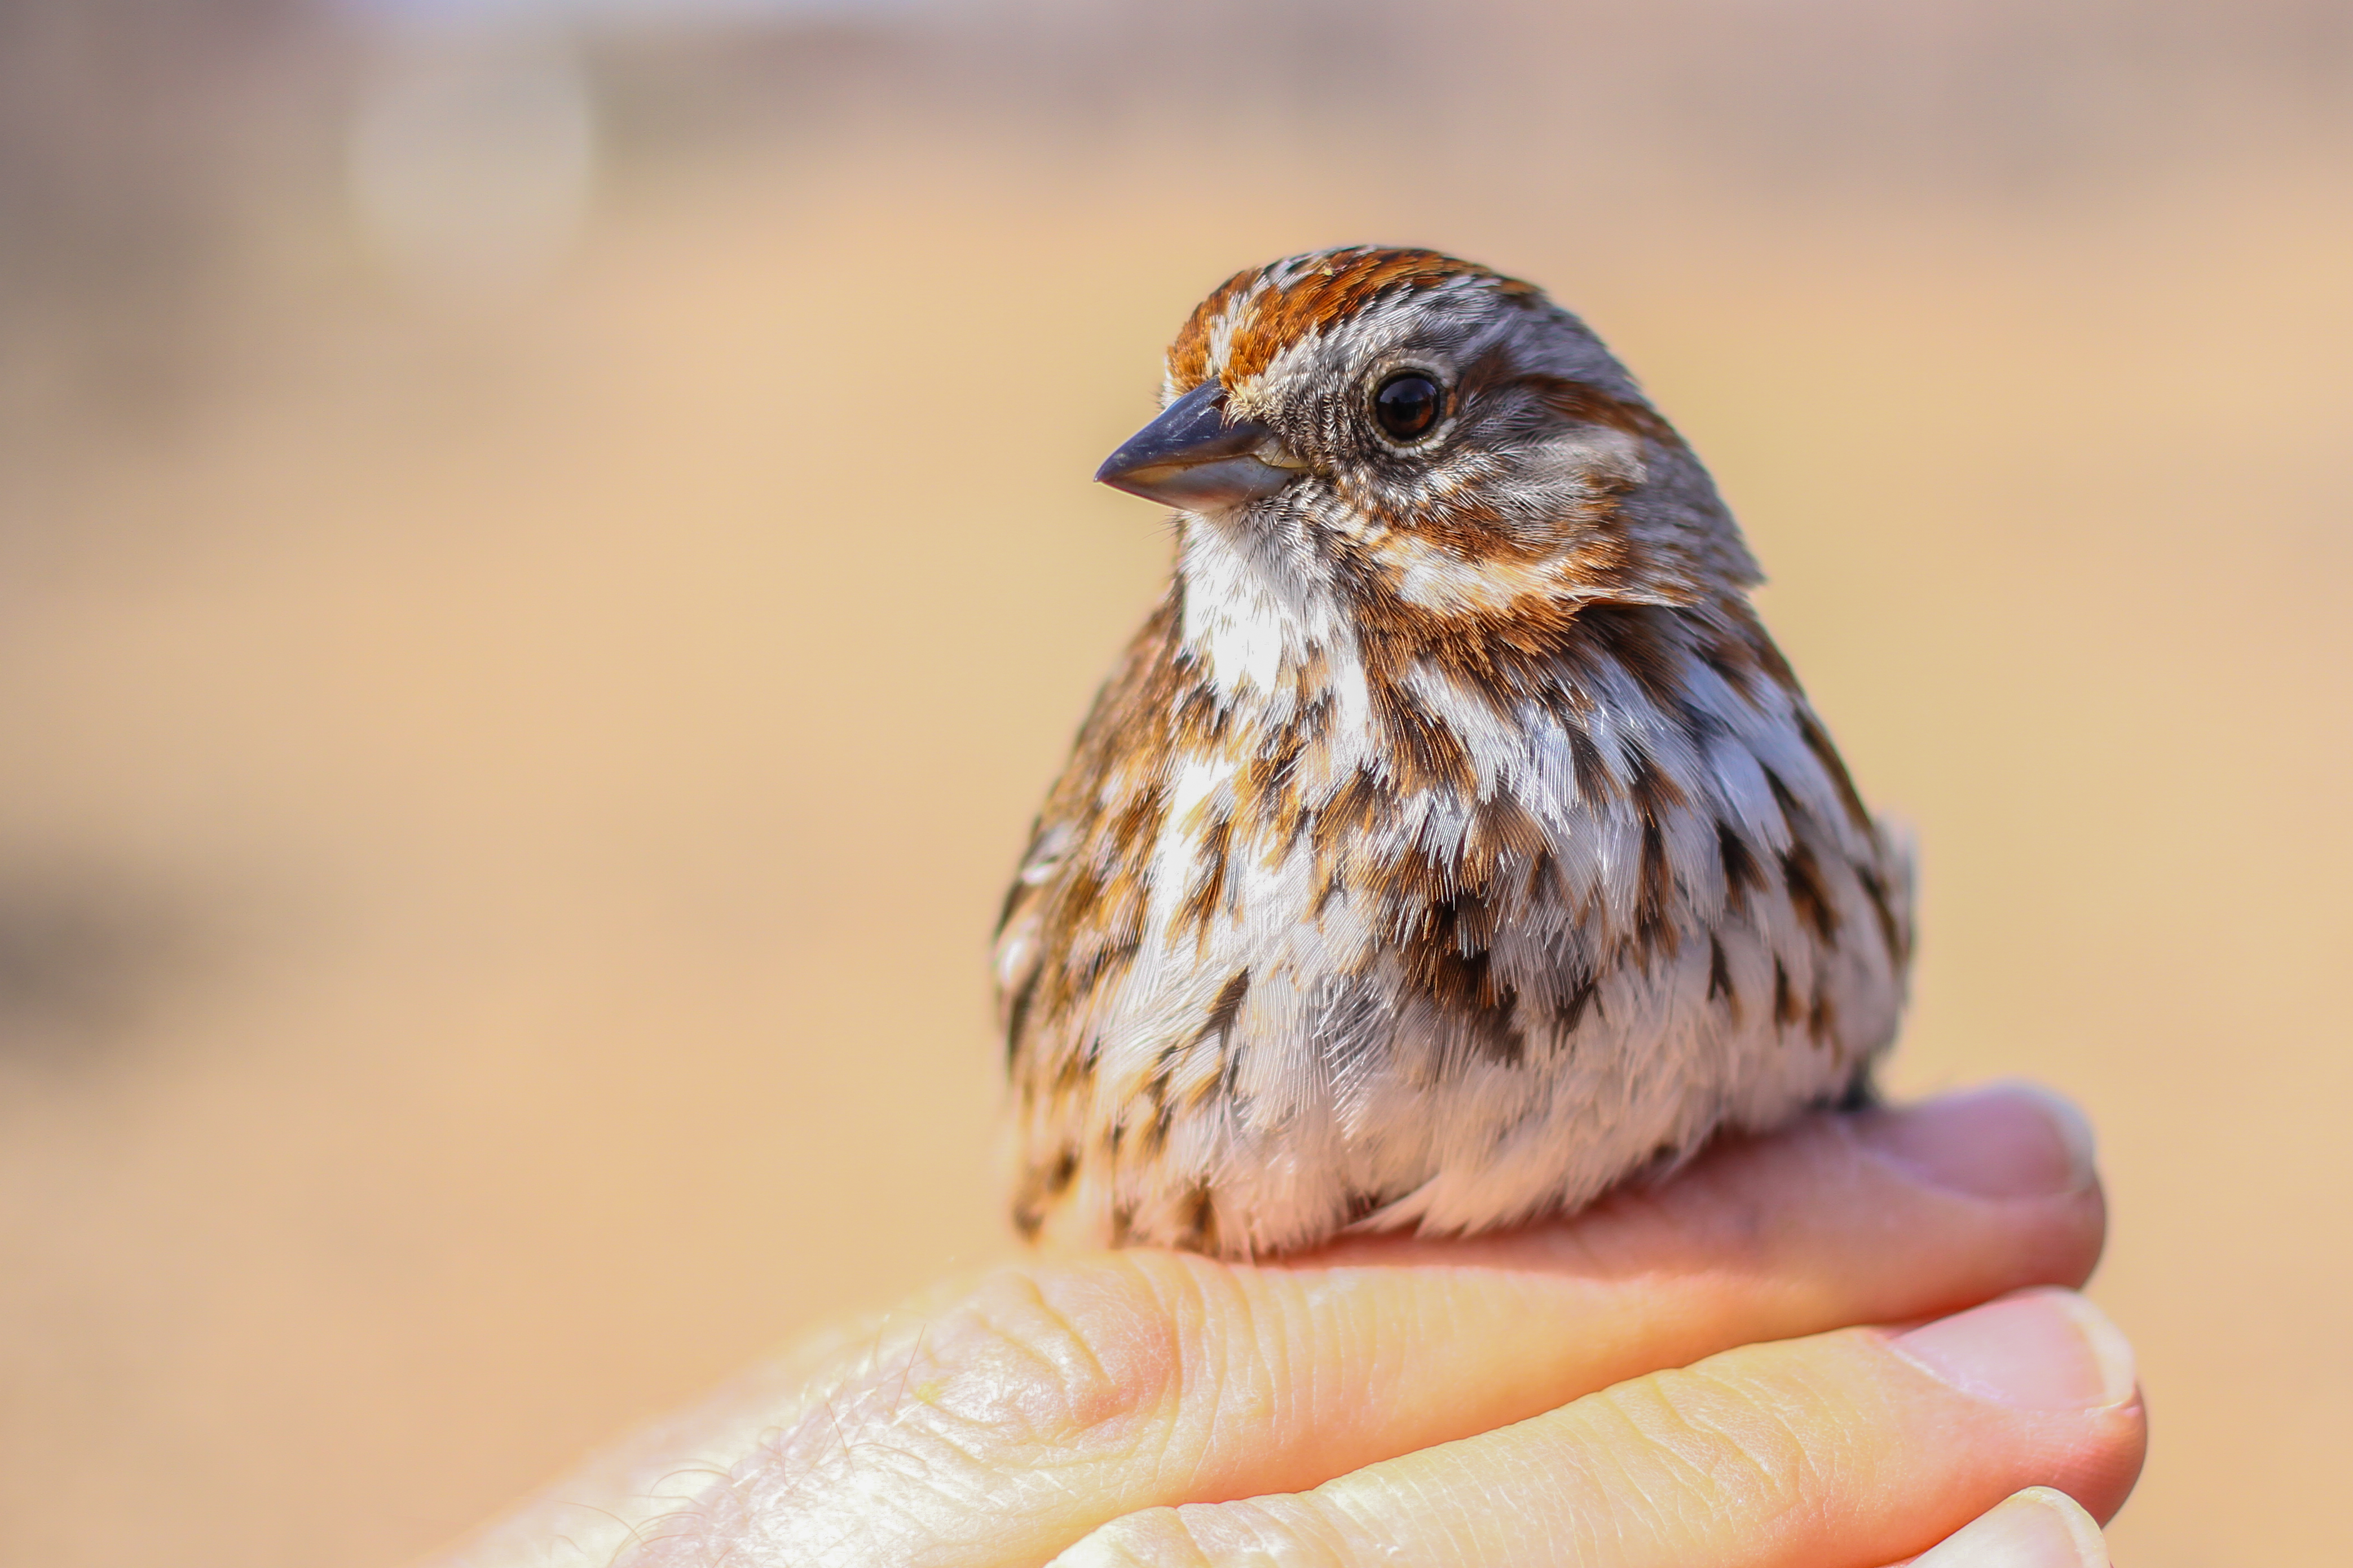 A Song Sparrow held by a biologist